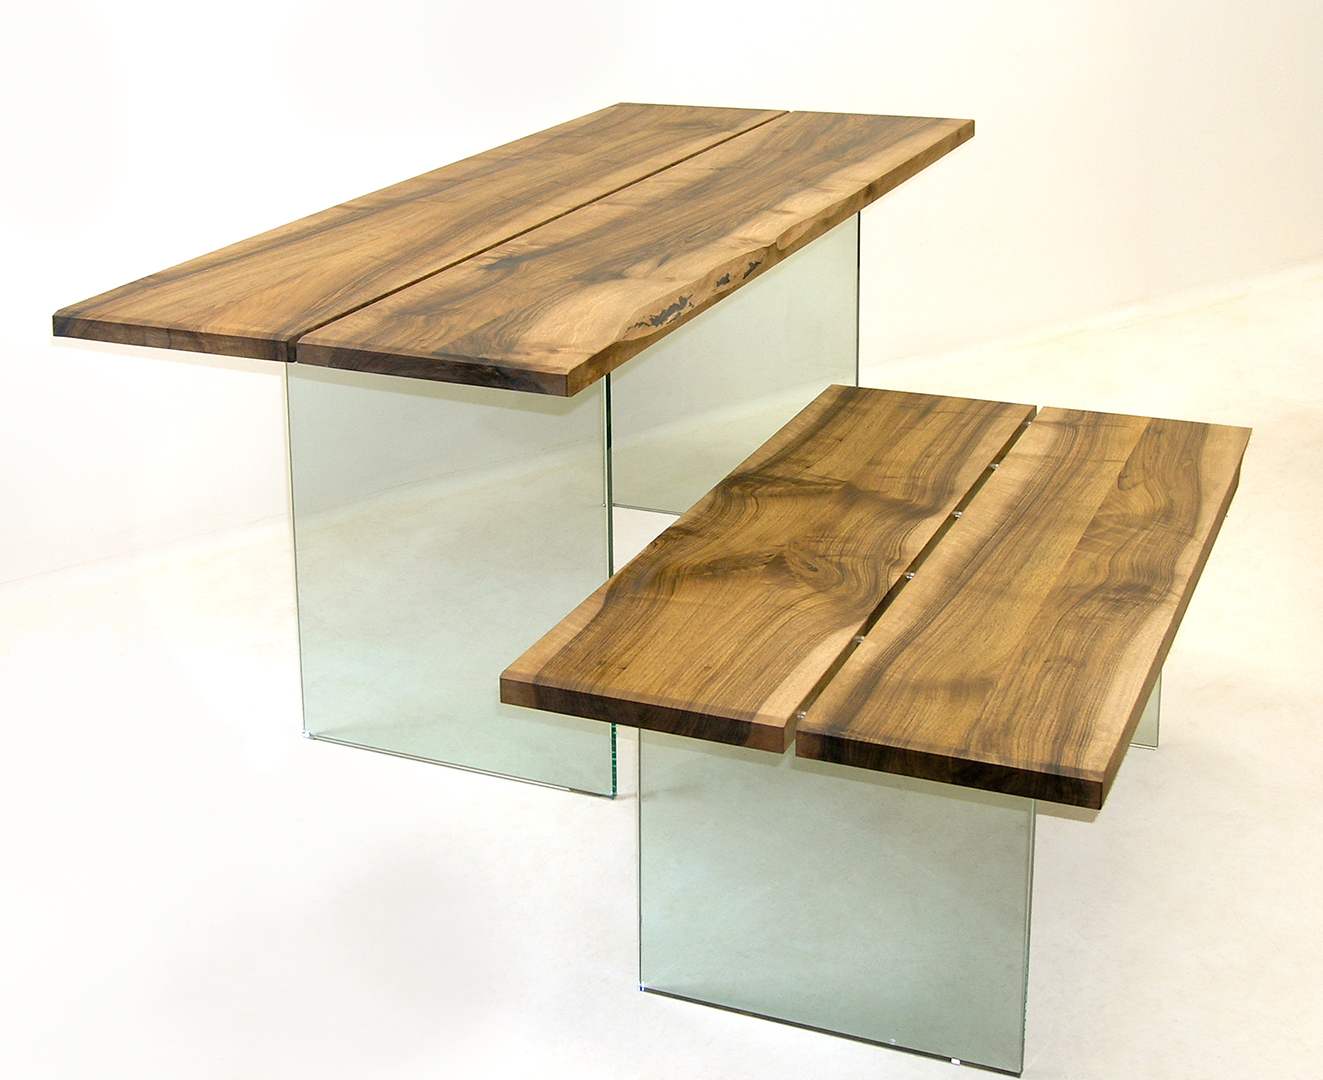 MapleArt Custom Wood Furniture Vancouver BCLinden  : linden dining and coffee tables wood glasss from mapleart.ca size 1323 x 1080 jpeg 853kB